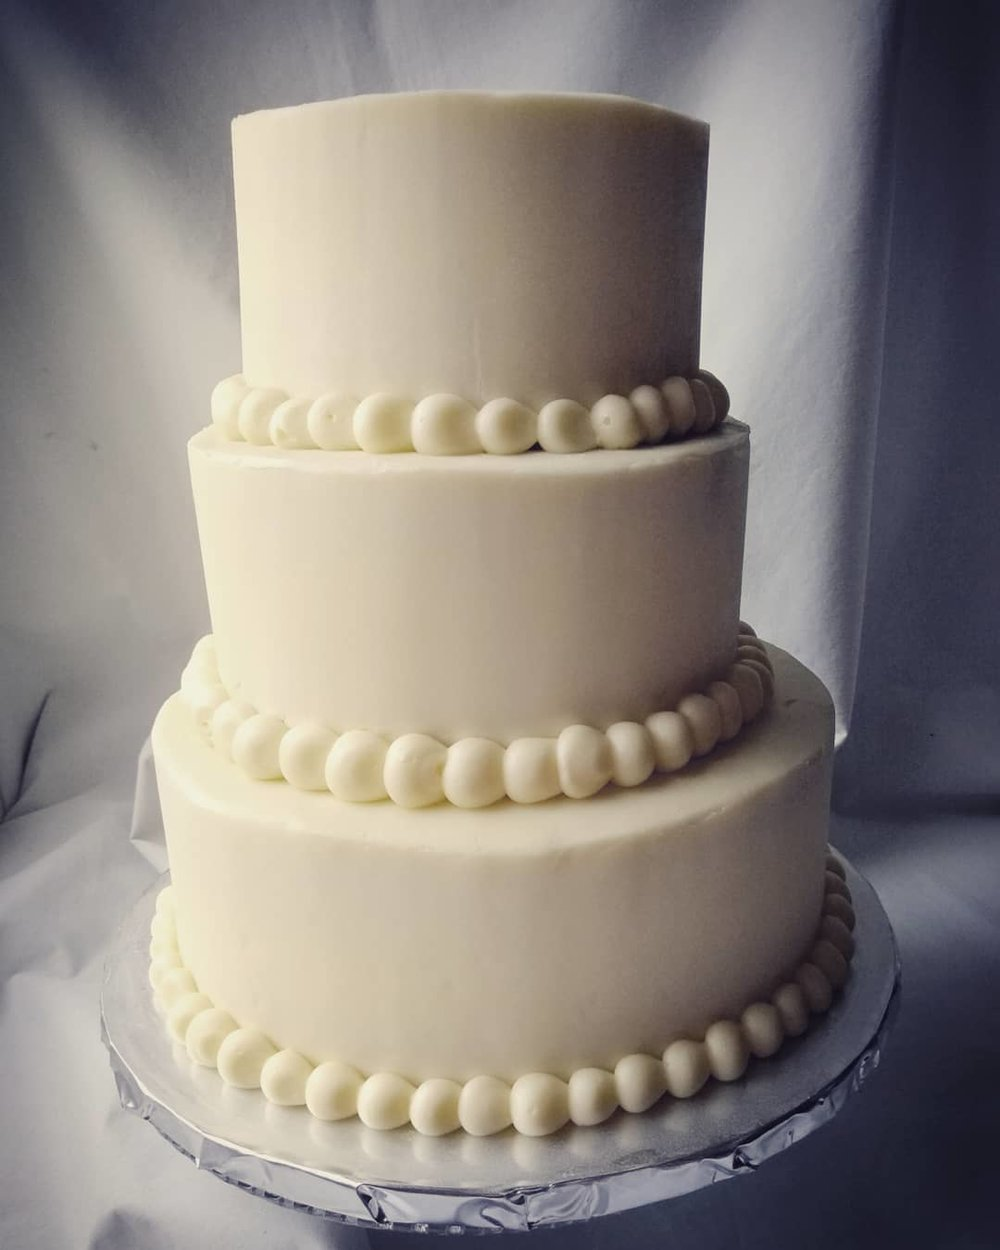 Cake showing smooth finish icing with a pearl border